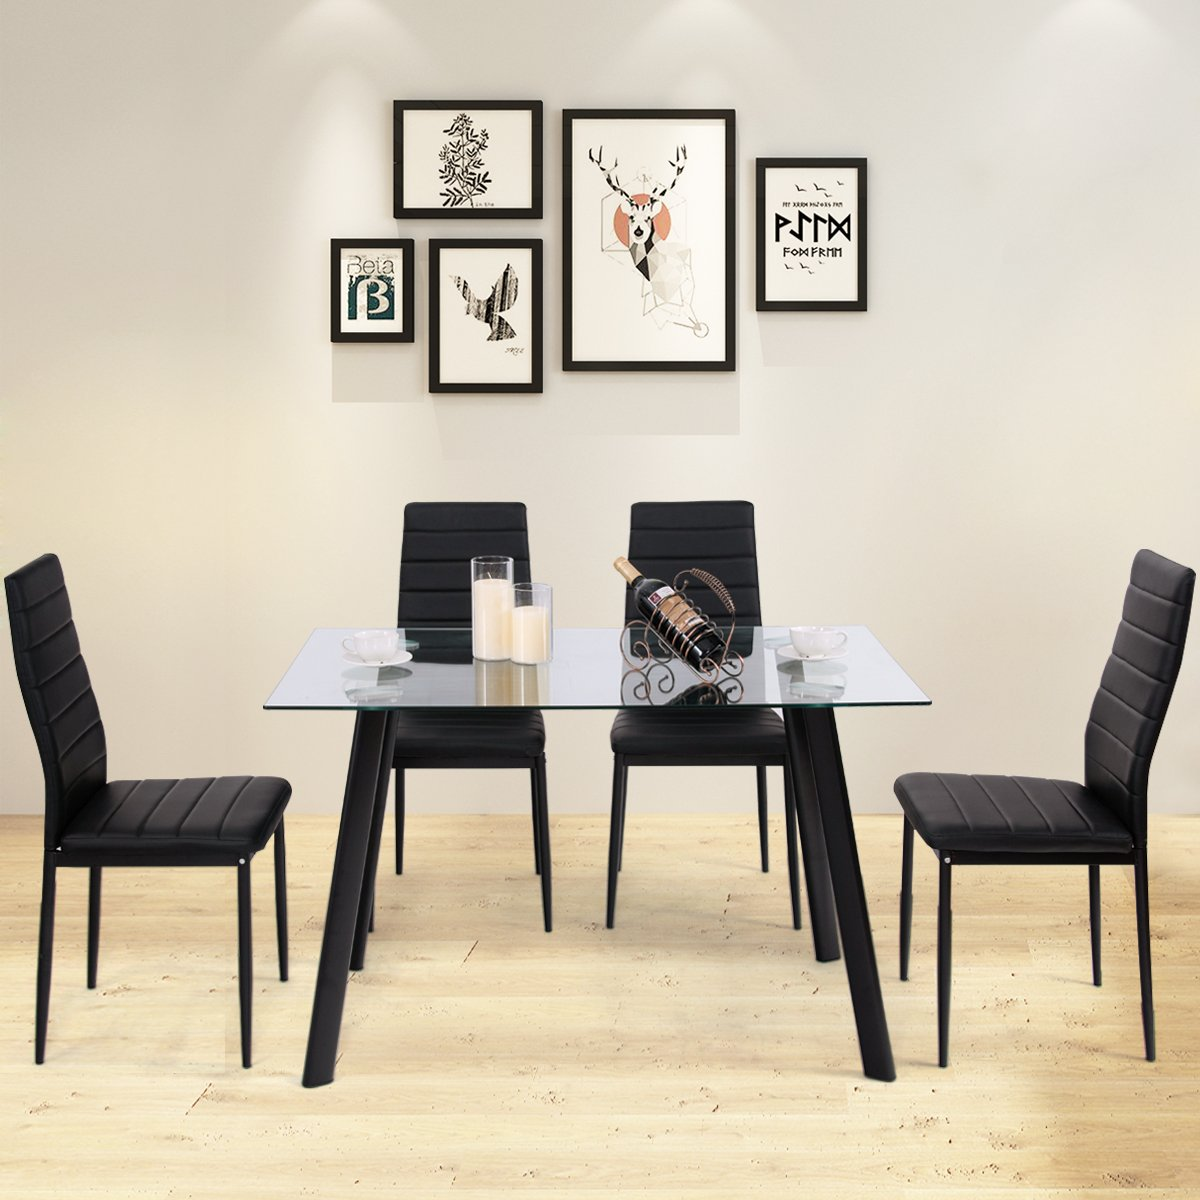 Tangkula 5 PCS Dining Table Set Modern Tempered Glass Top and PVC Leather Chair w/4 Chairs Dining Room Kitchen Furniture (Black)